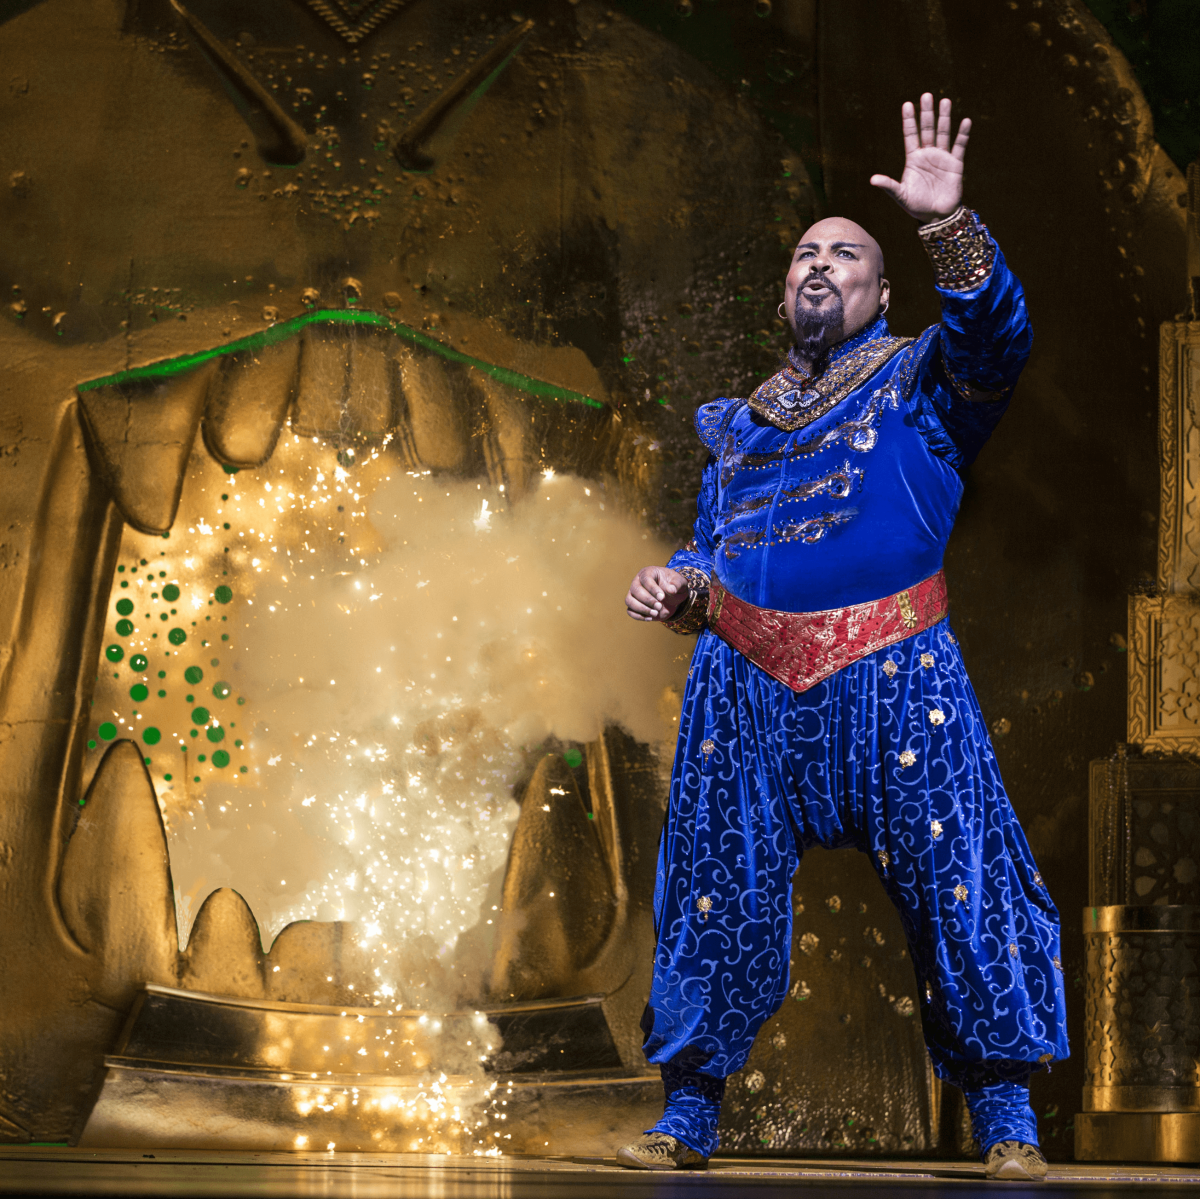 James Monroe Iglehart in Disney's Aladdin